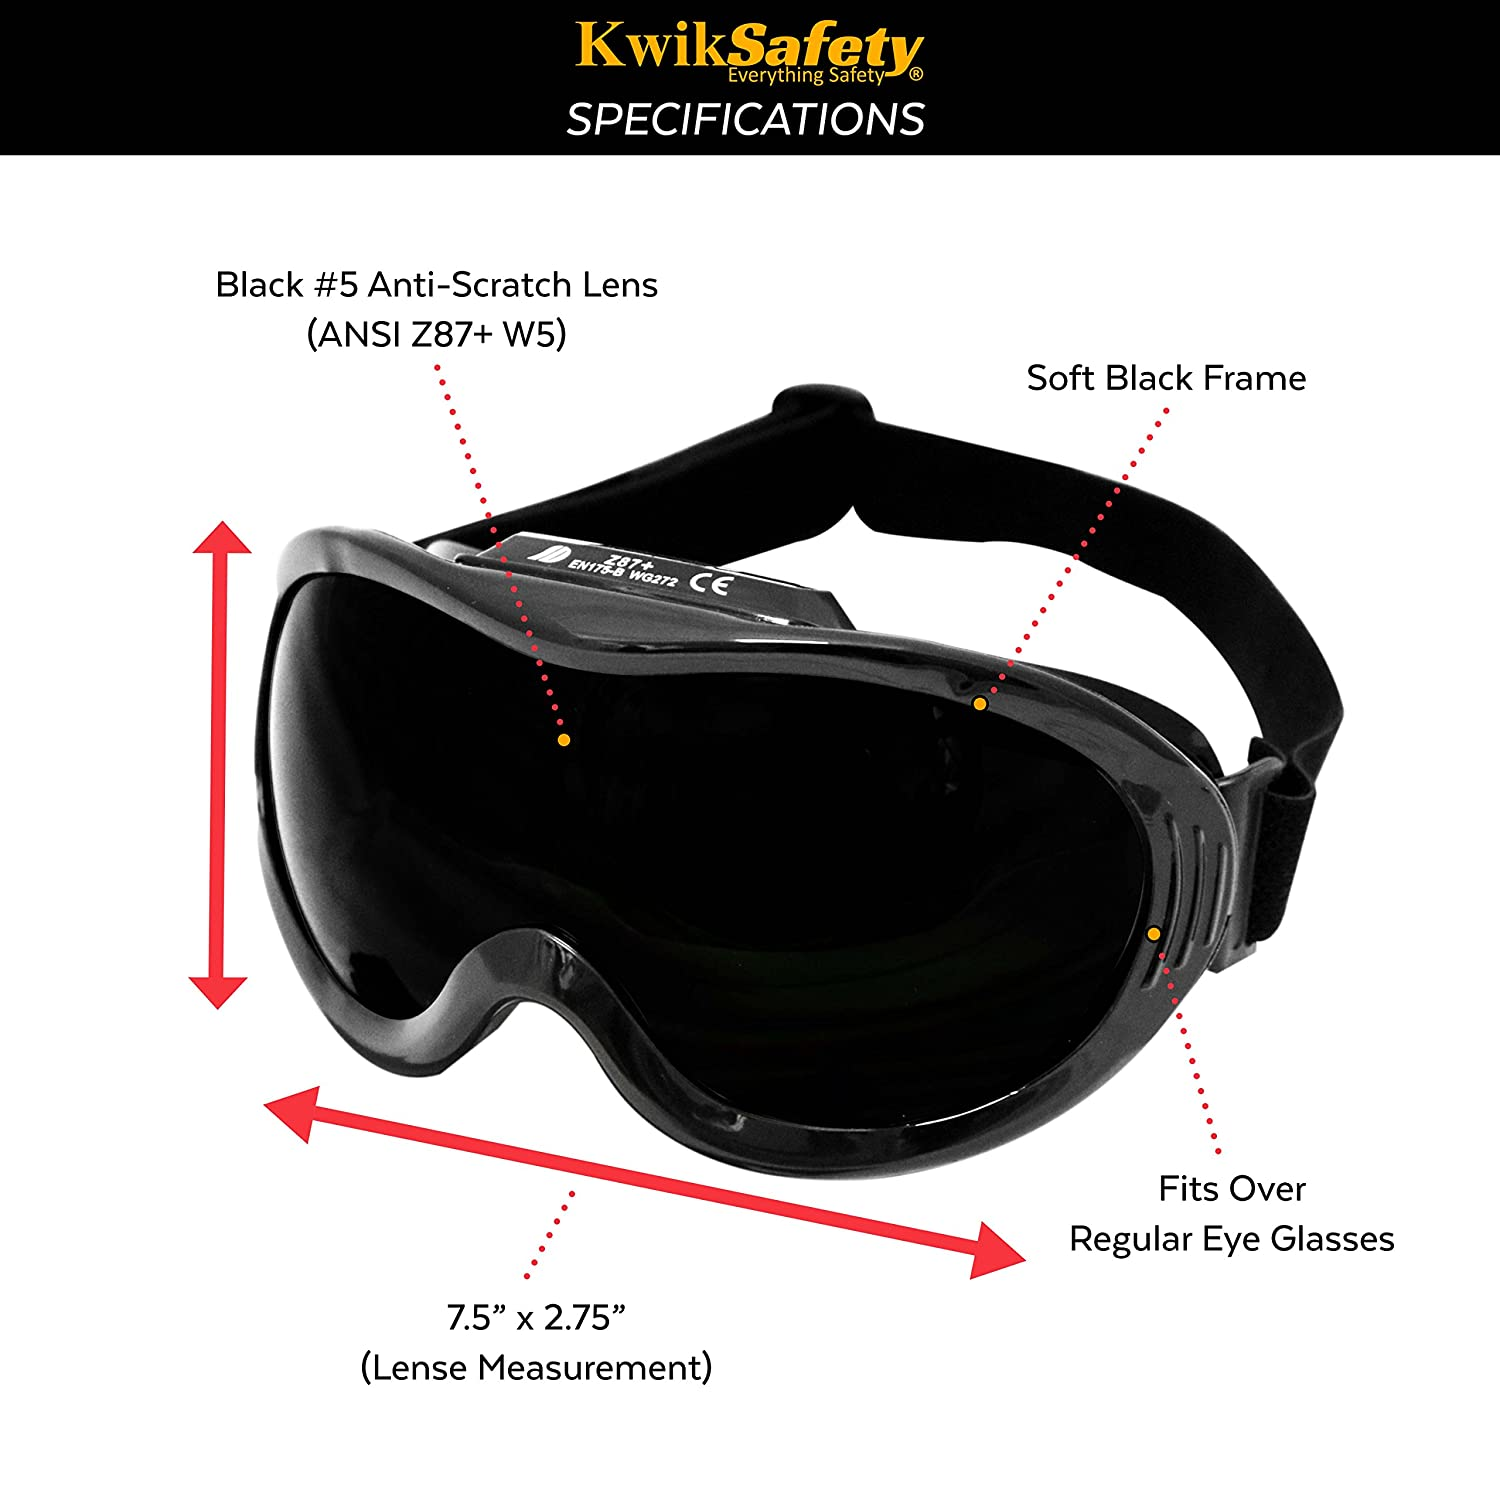 Anti-Fog, Anti-Scratch, Snug FIT Pit Viper ANSI Industrial Charlotte, NC Welding Goggles Shade 5 Ventilation Infrared Welding Torch Brazing Flame Cutting Gas Oxy-Acetylene Black KwikSafety